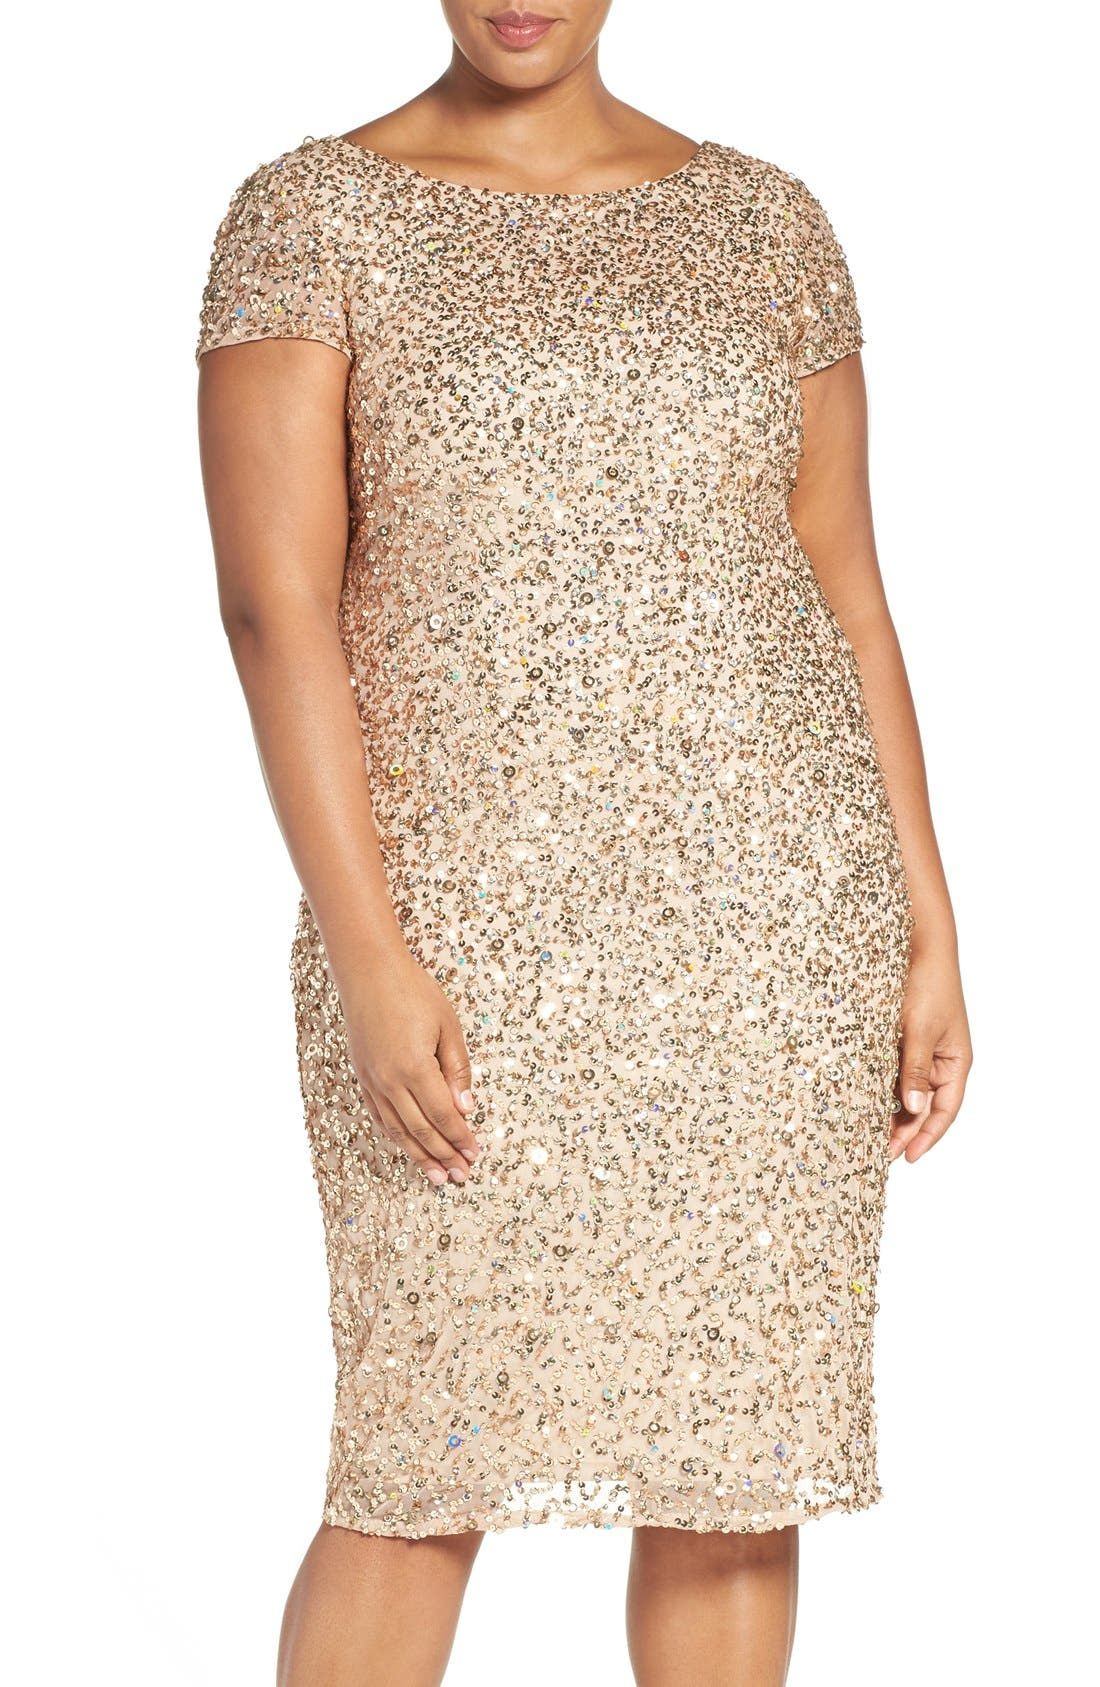 Adrianna Papell Beaded Cap Sleeve Sheath Dress (Plus Size)